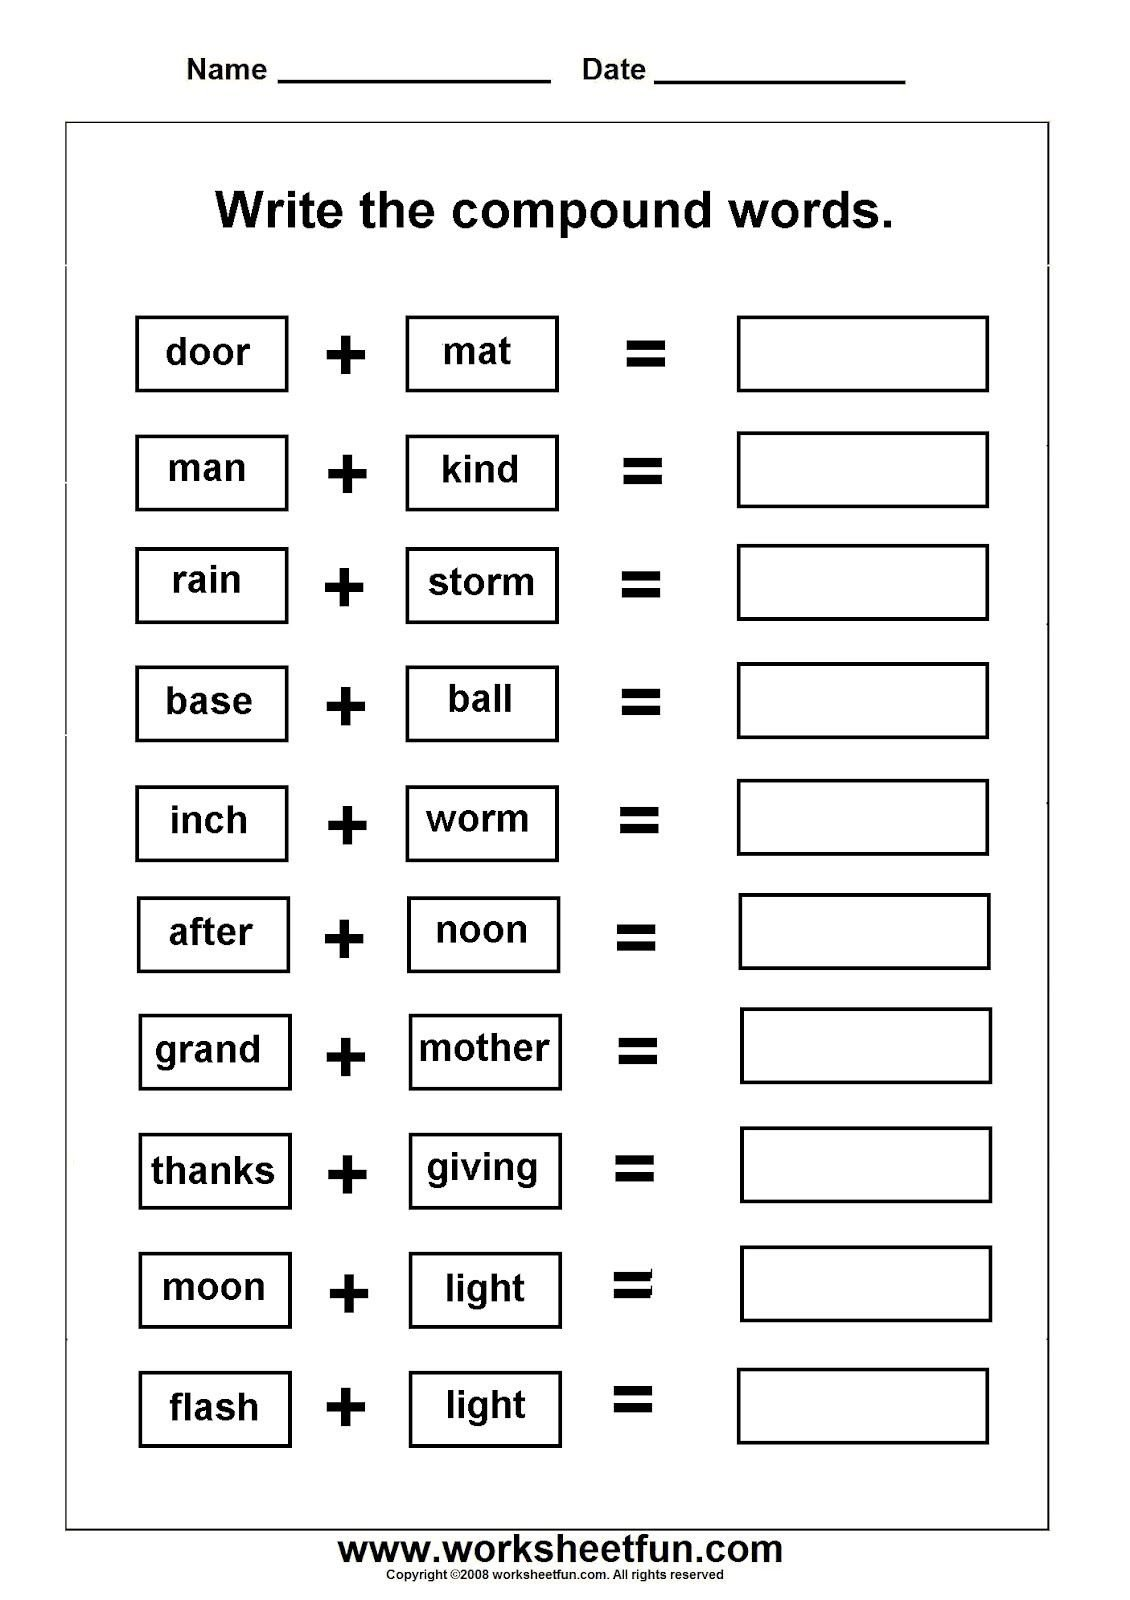 Free Printable Compound Word Worksheets Pound Words Worksheets Grade 3